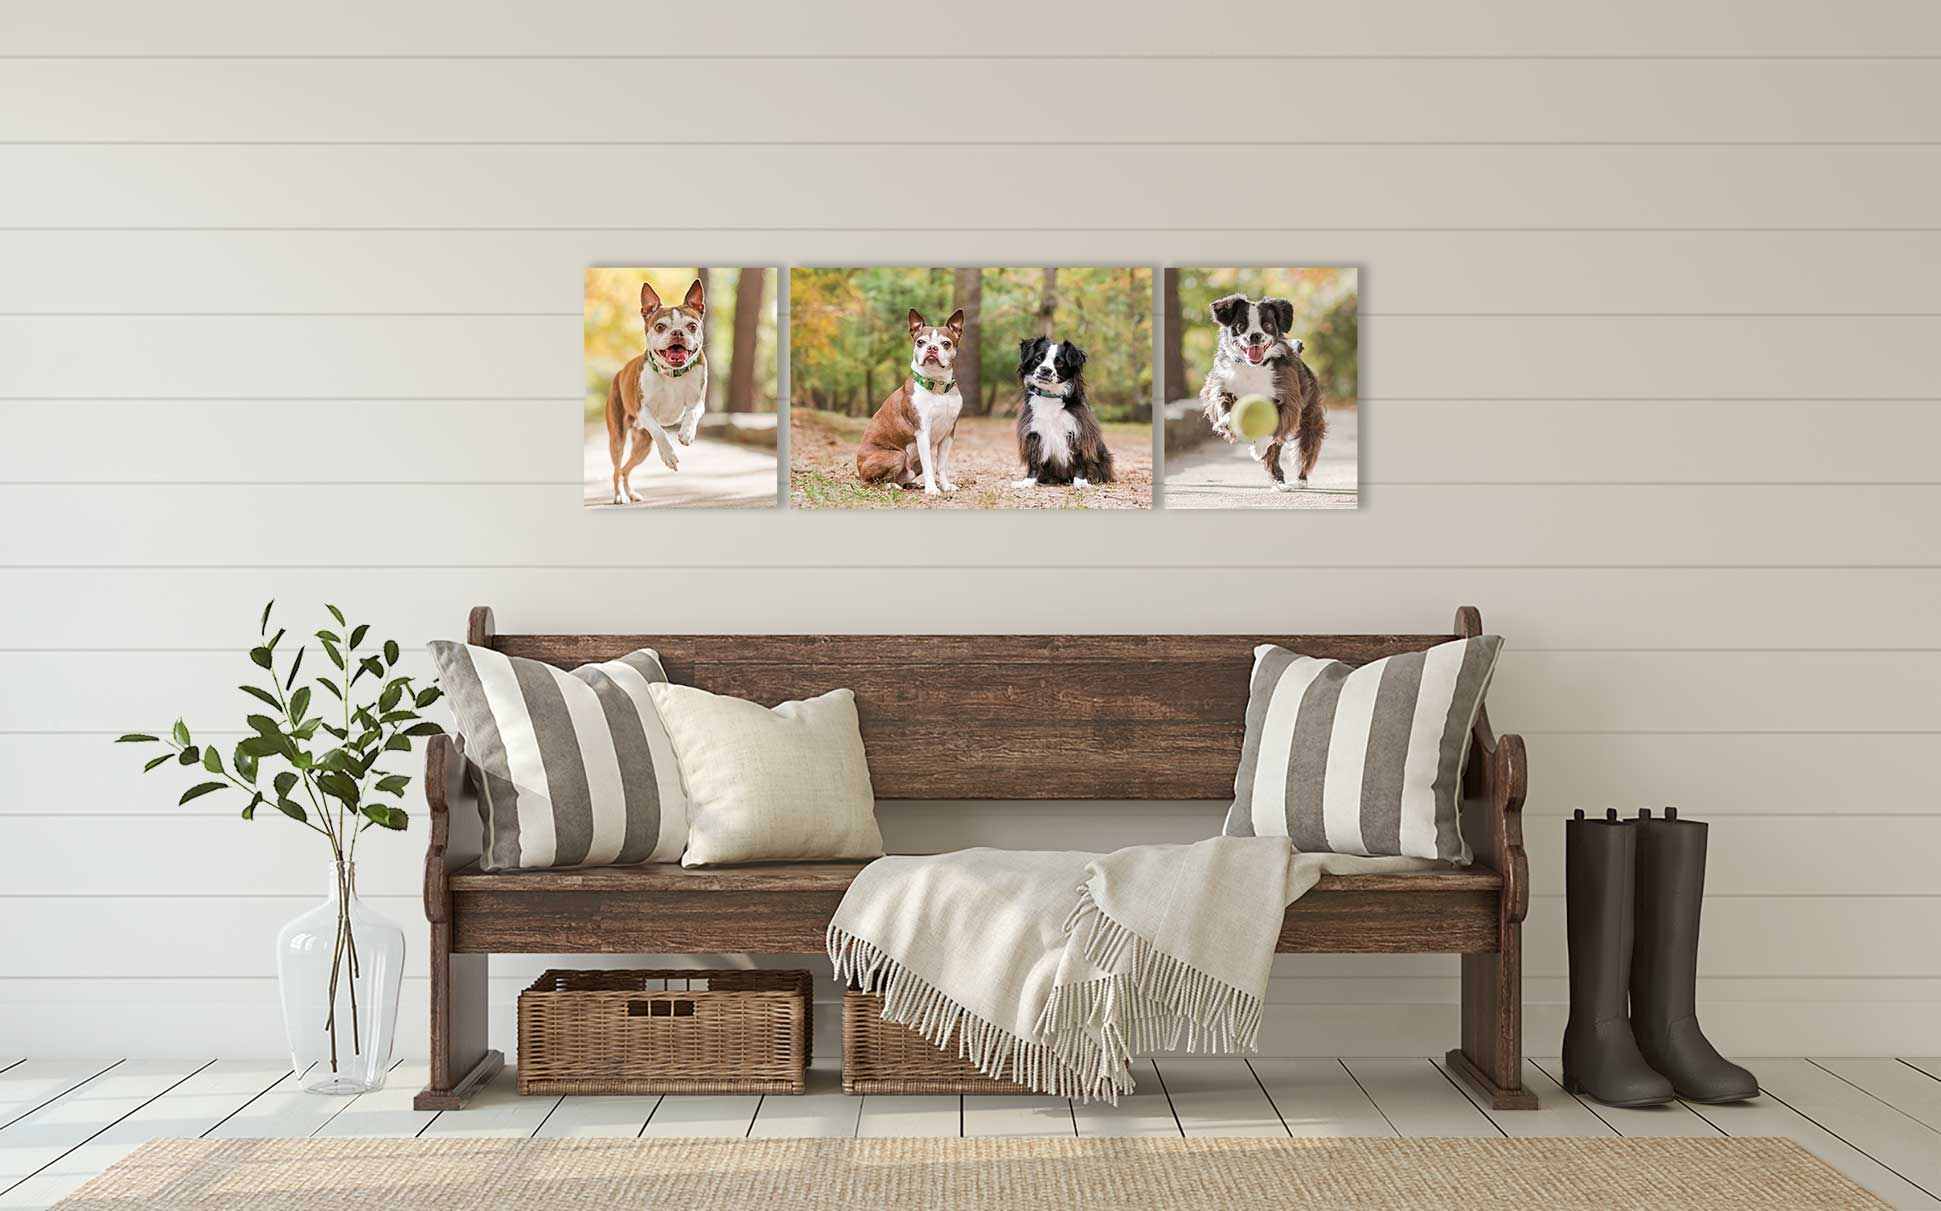 Your walls can be decorated with custom dog photos by Atlanta dog photographer, CM Bryson.